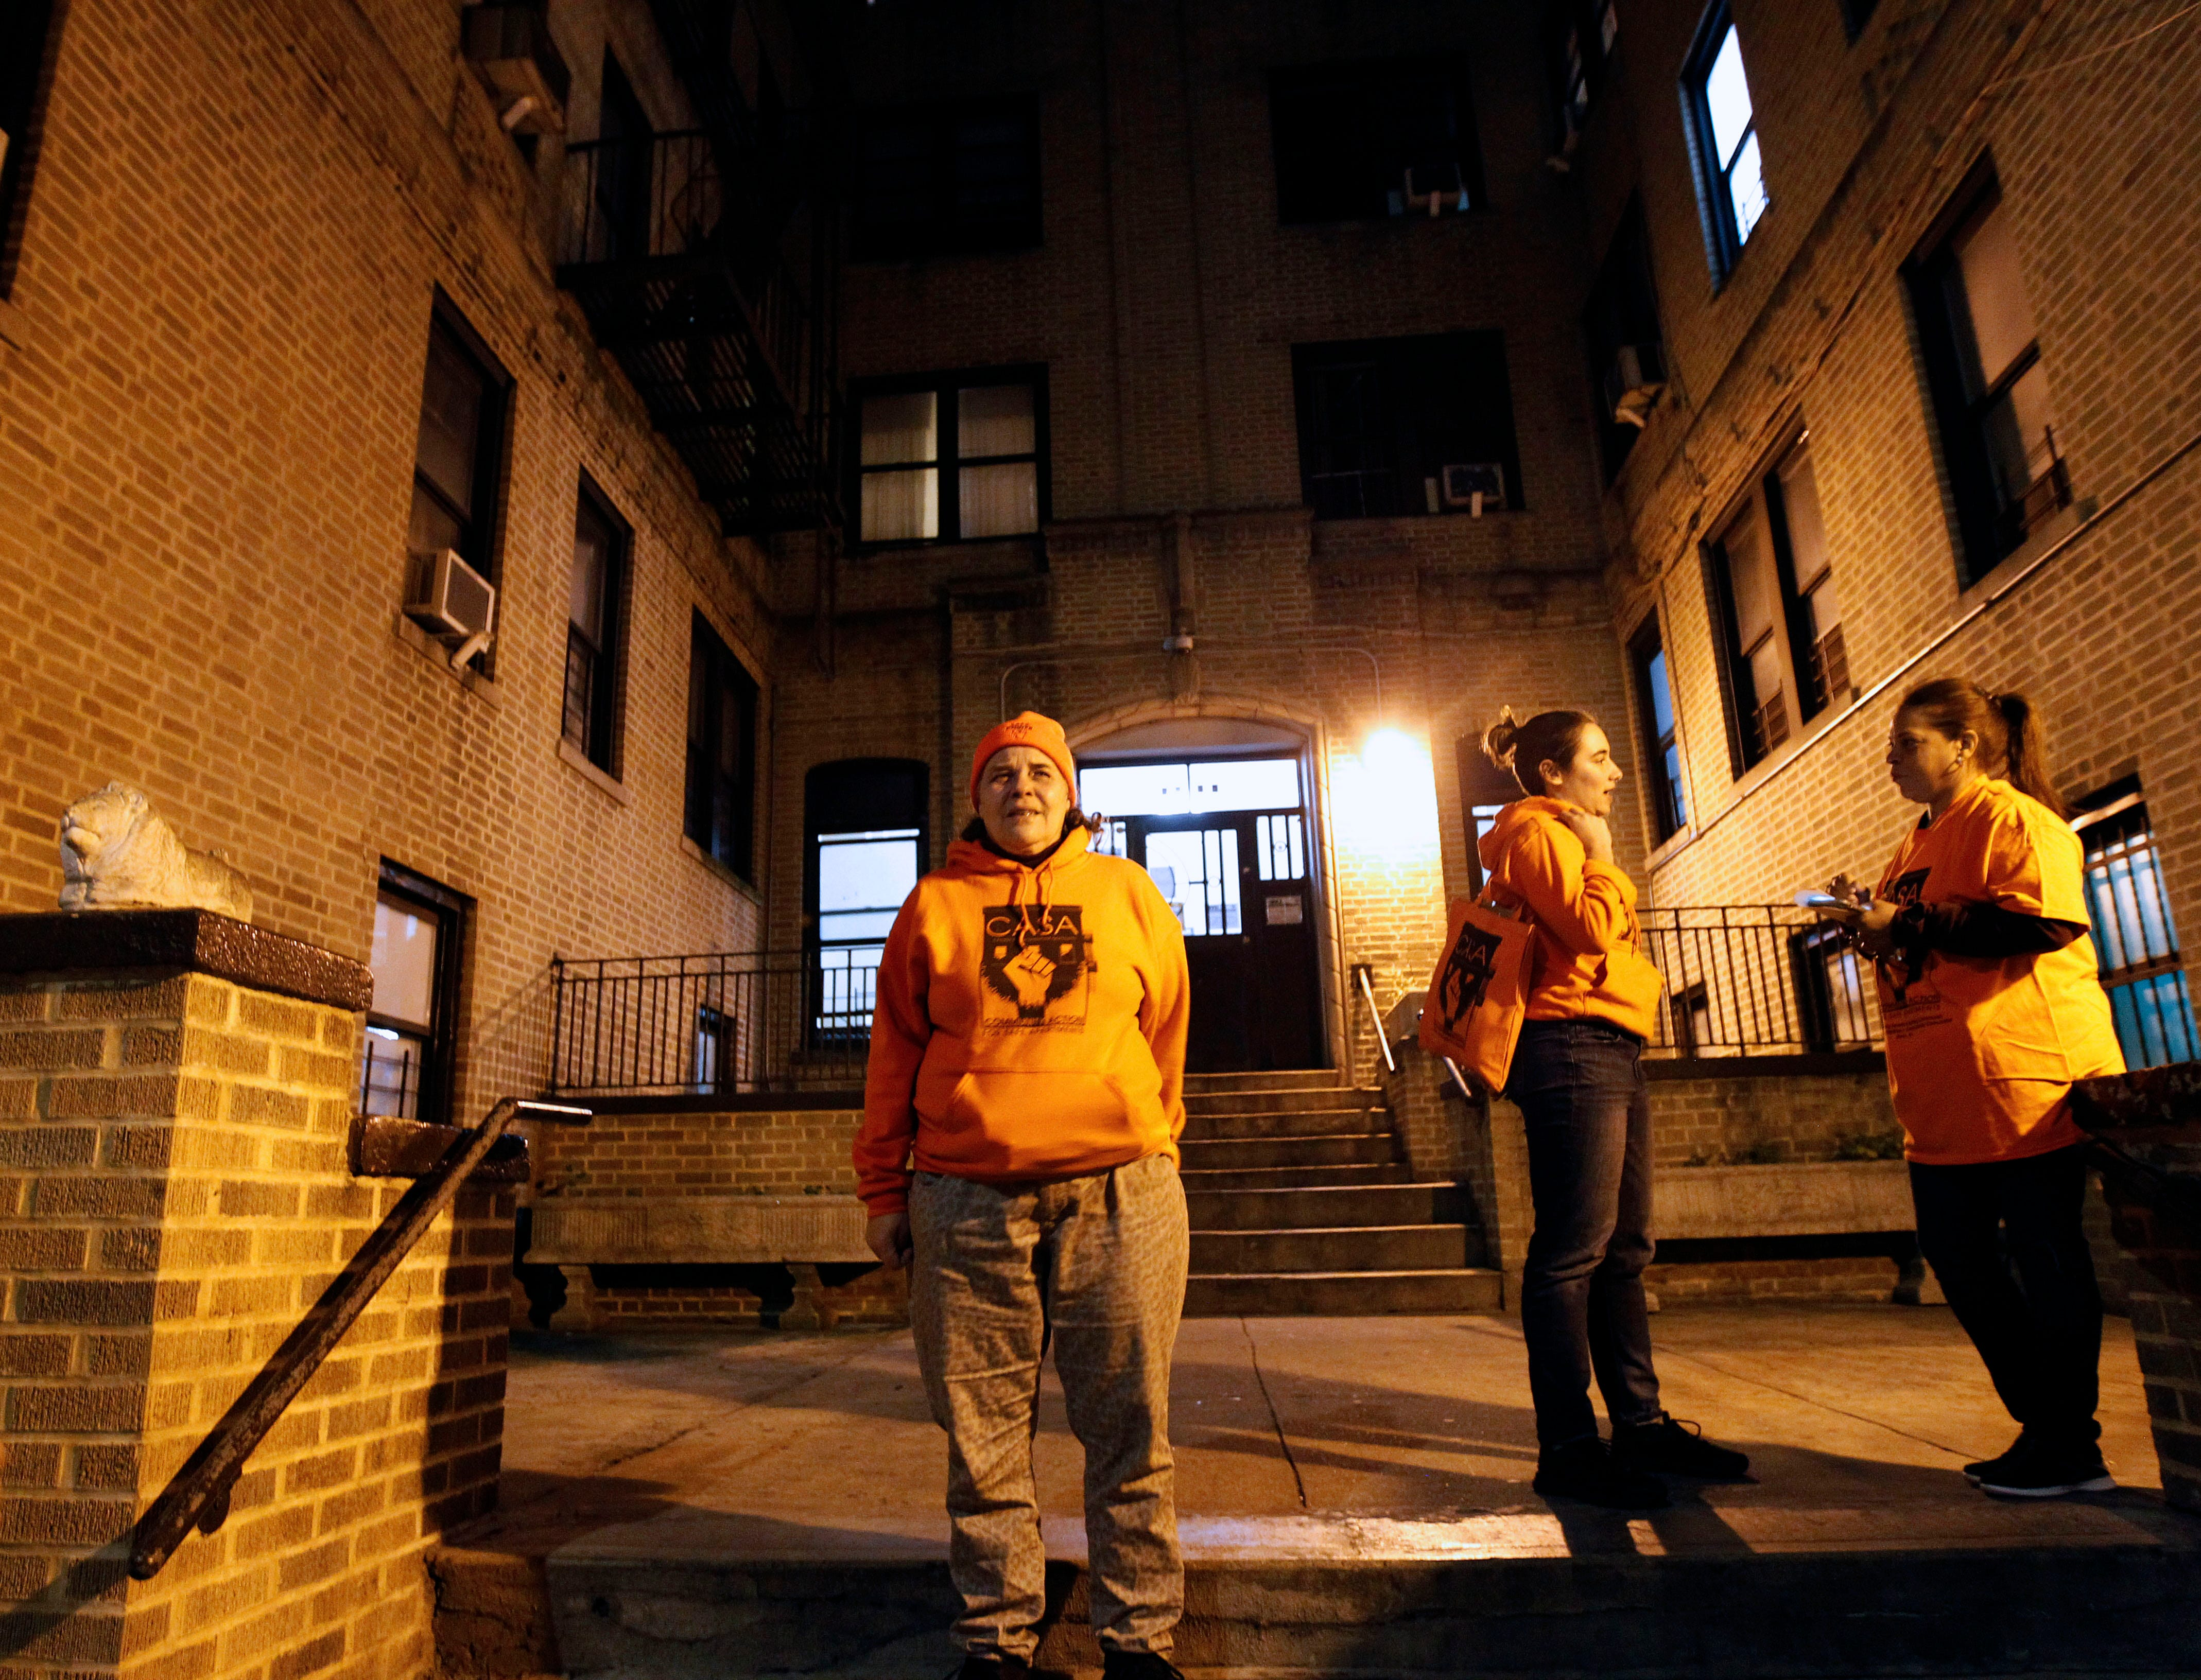 Kim Statuto, left, stands outside her Bronx apartment in October 2019 following a protest that she organized for the tenants in her building to bring attention to the fact that they have been without gas for over a year.